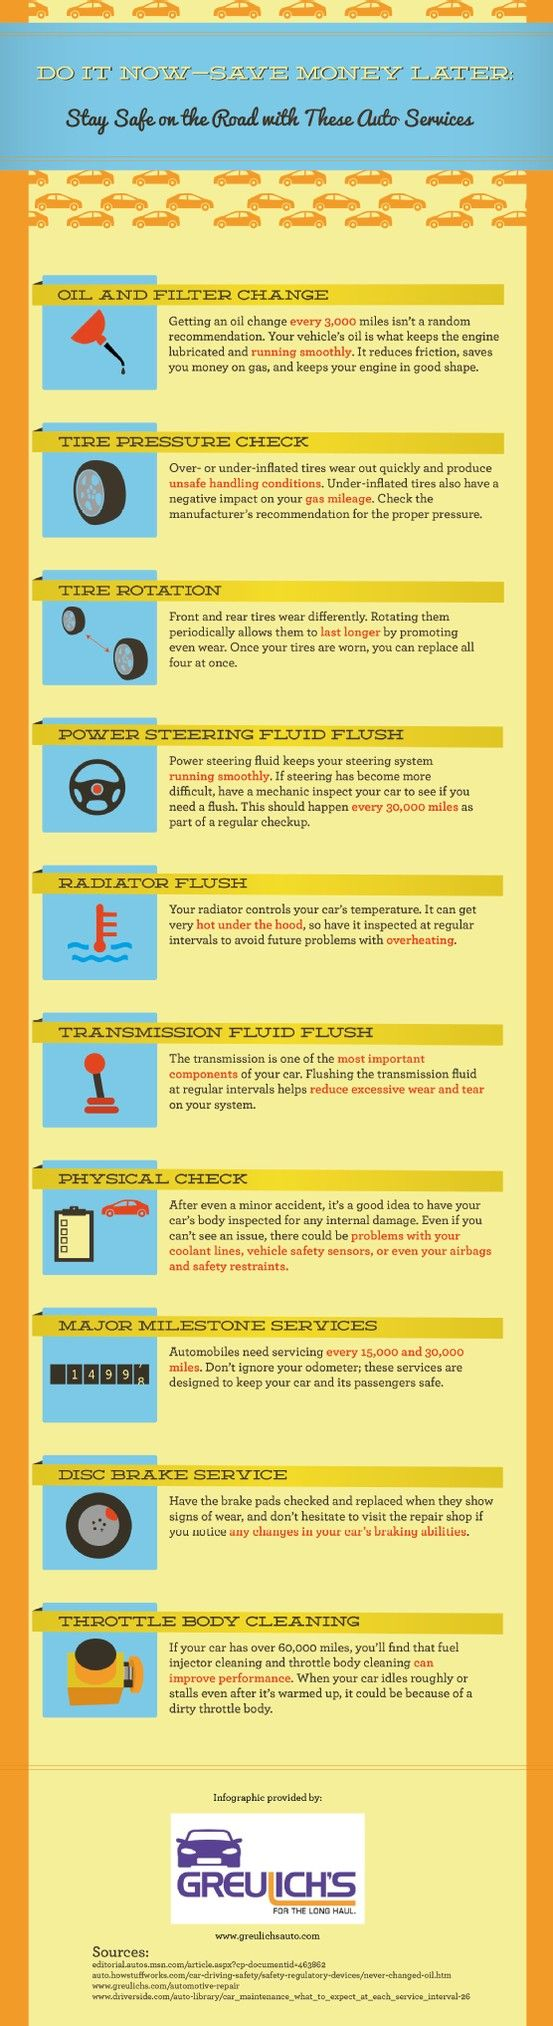 Even if a car accident doesn't create any external vehicle damage, this incident may cause a problem in the car's coolant lines, safety sensors, or airbag features. Learn more important car care tips by taking a look at this infographic! Source: http://www.greulichsauto.com/670206/2013/03/26/do-it-now%E2%80%94save-money-later-stay-safe-on-the-road-with-these-auto-services-infographic.html